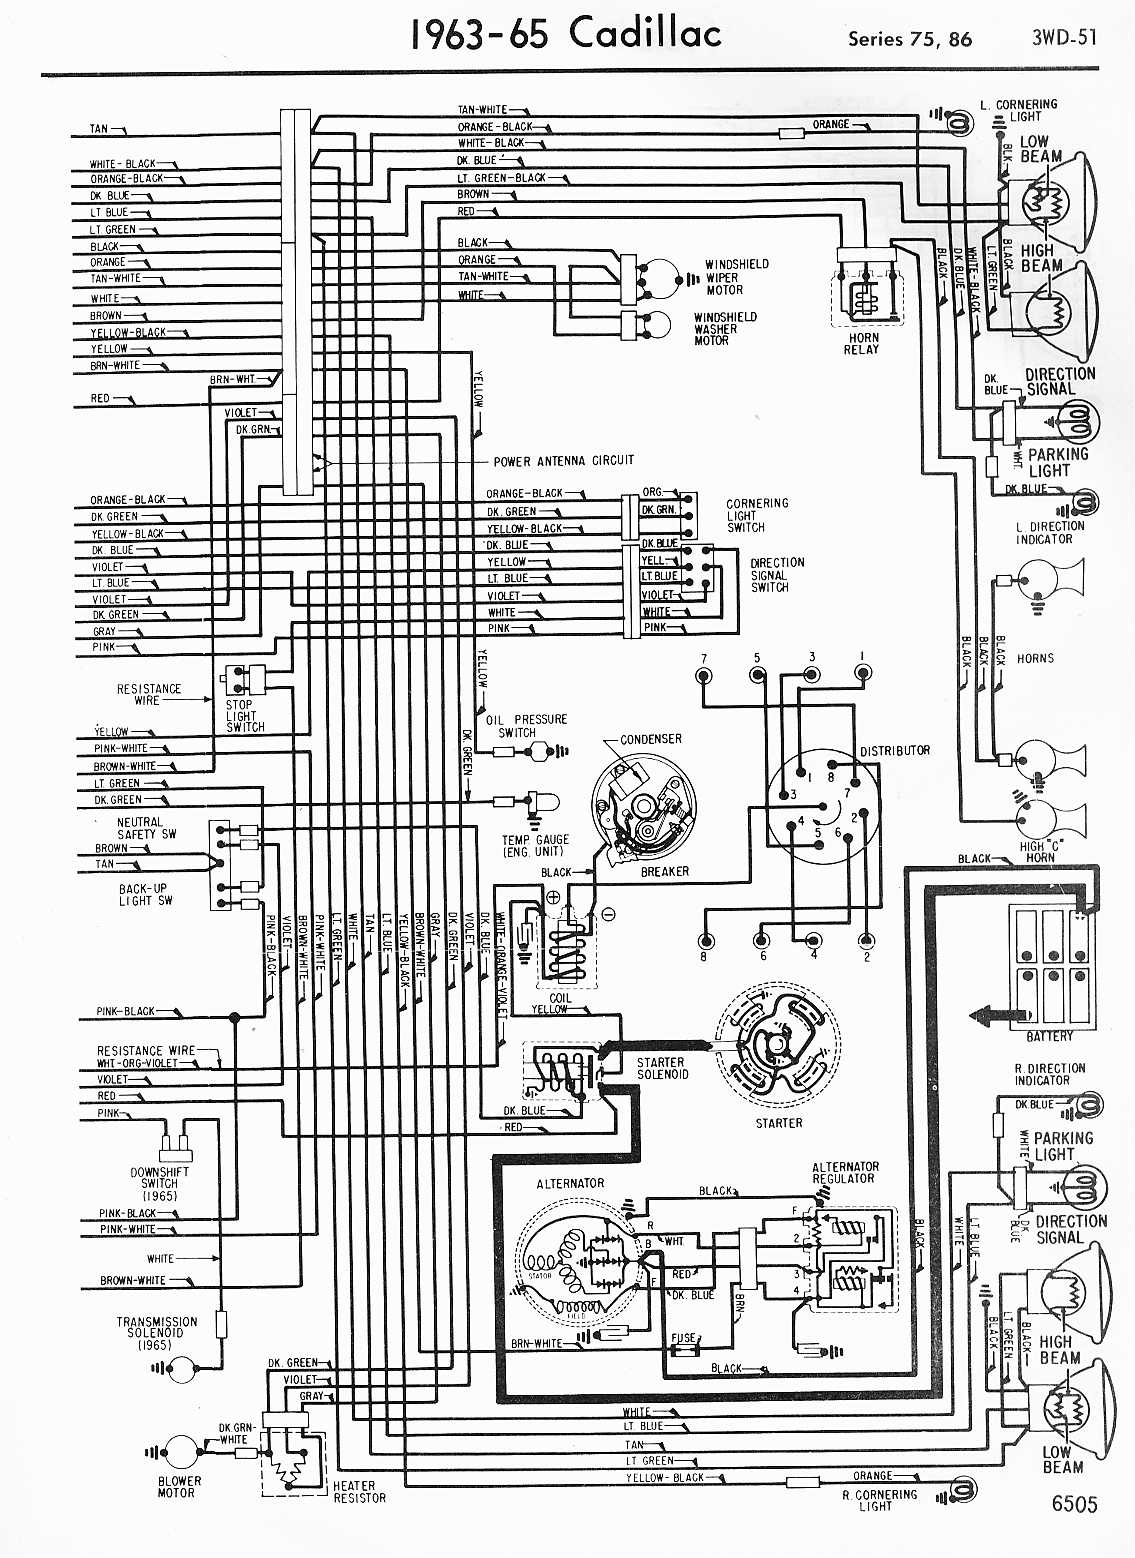 MWireCadi65_3WD 051 cadillac wiring diagrams 1992 cadillac eldorado wiring diagram 1996 cadillac deville fuse box diagram at mifinder.co